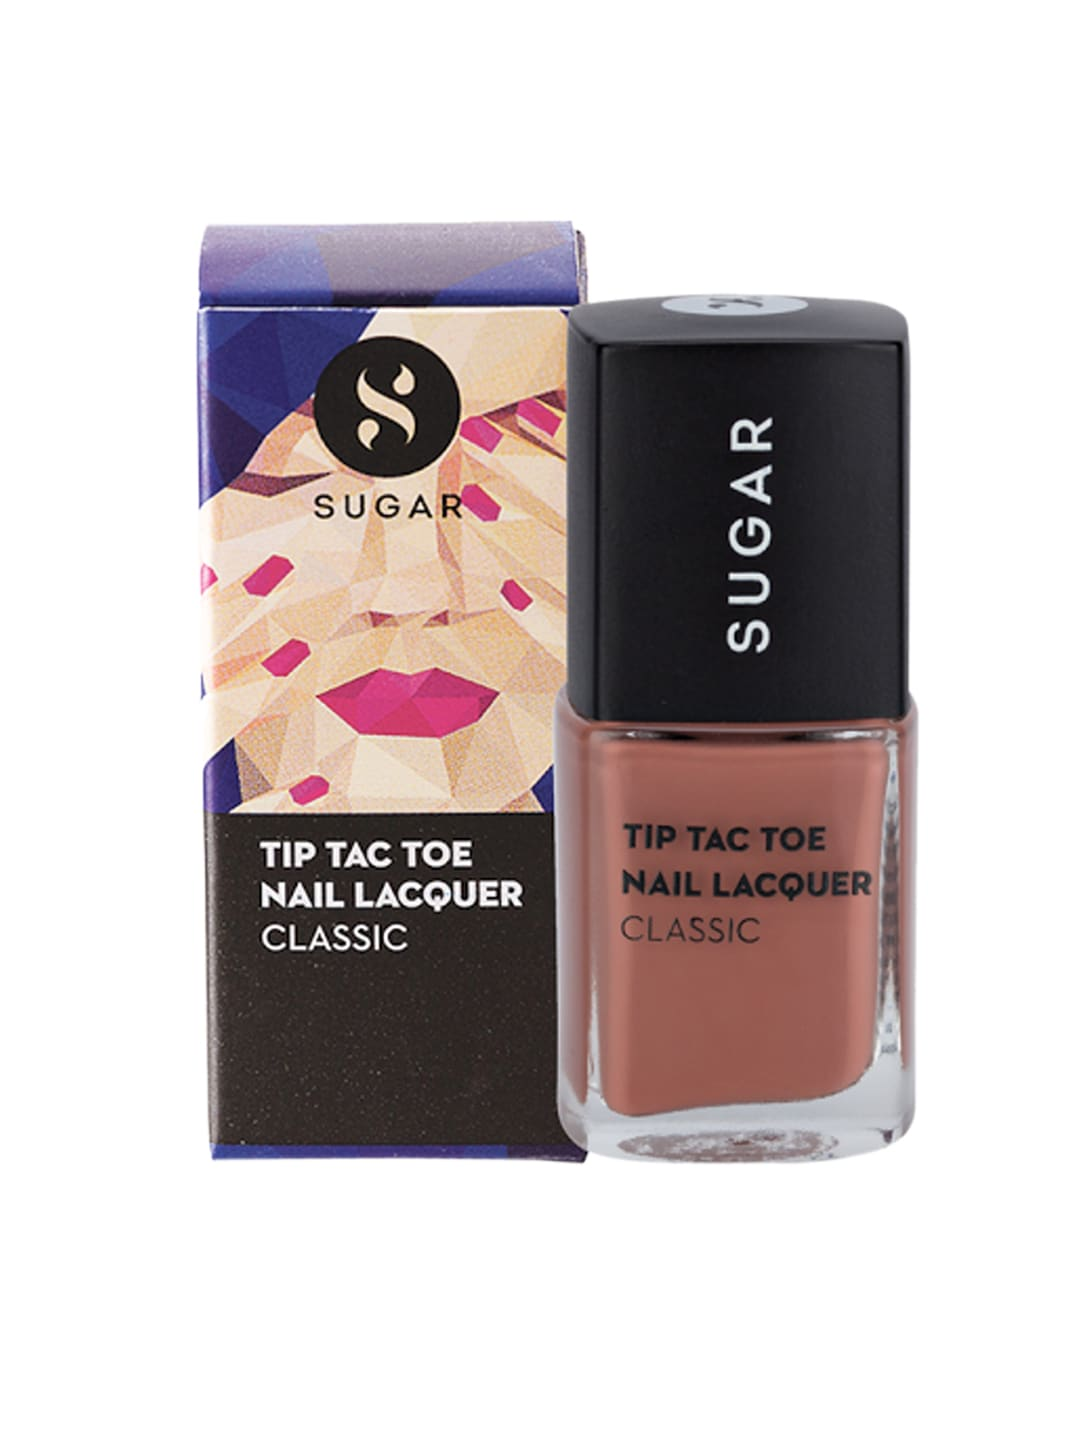 SUGAR Tip Tac Toe Classic Nail Lacquer - 006 Cookie Cutter image